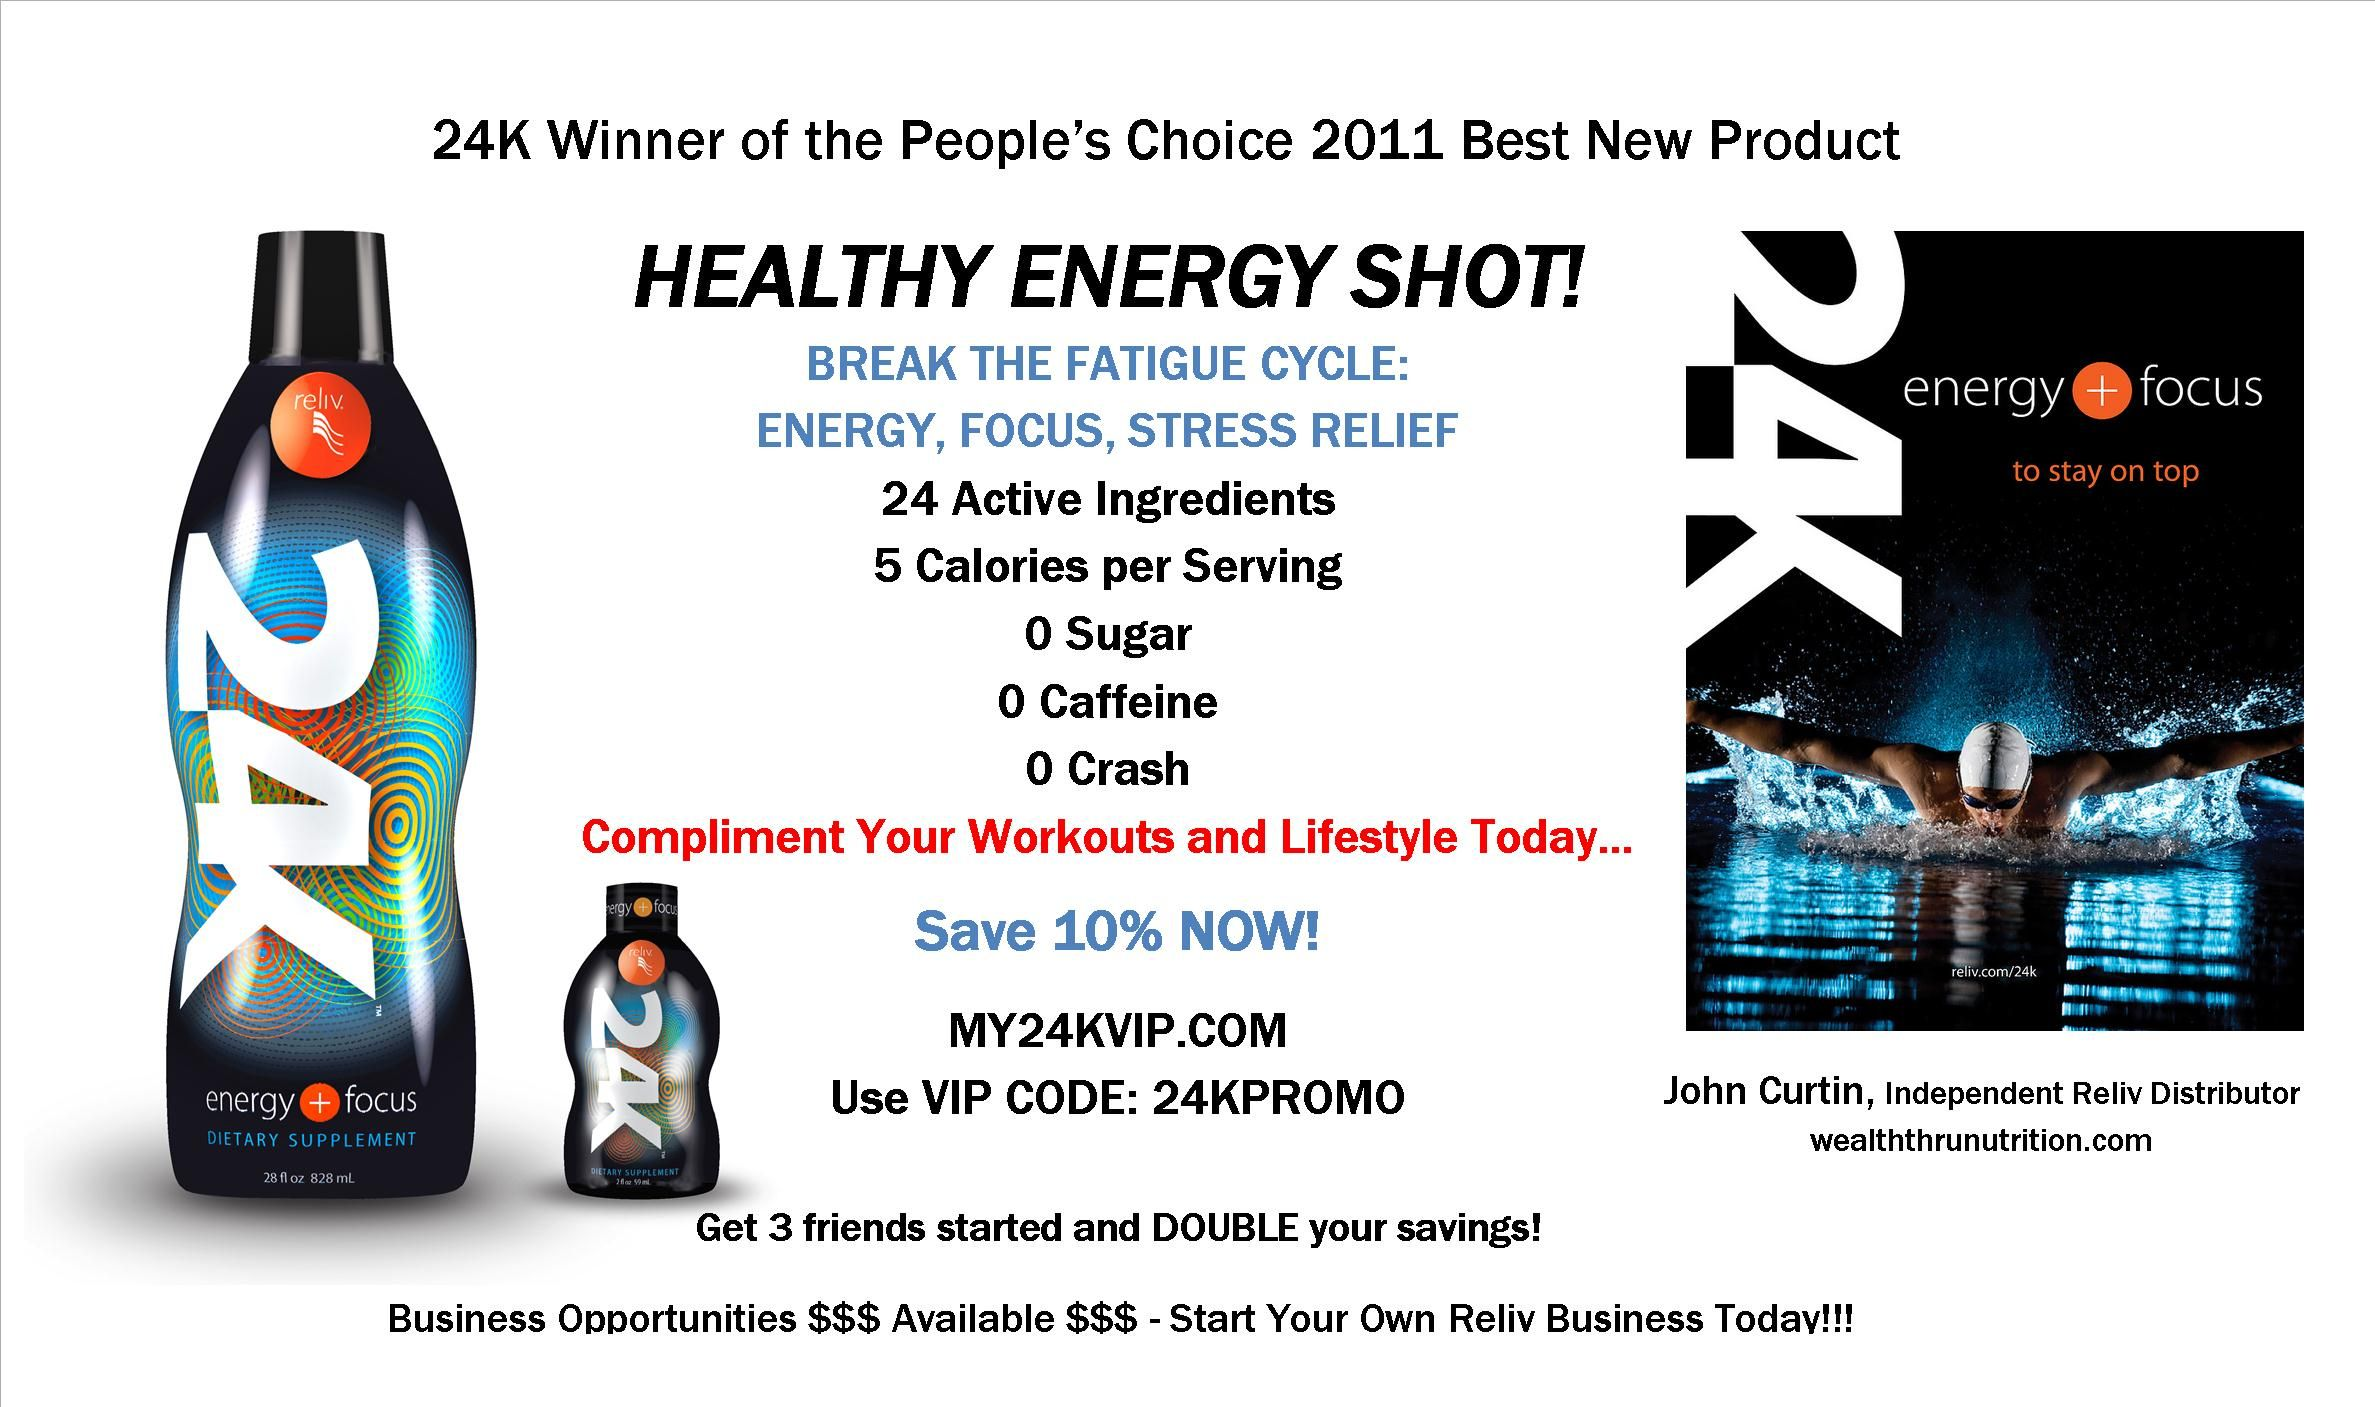 Need more energy, can't focus and too much stress in your life? Break the fatigue cycle with 24K Healthy Energy Shot!    Nothing like it on the market! It's a healthy energy shot that provides energy, focus and stress relief with no caffeine, no sugar, only 5 calories and 24 active ingredients.    Don't mask the symptoms with unhealthy stimulants, feed your body great nutrition. All products come with a 30 day money-back guarantee    Compare it to 5-hour Energy...why pay more for less!!!